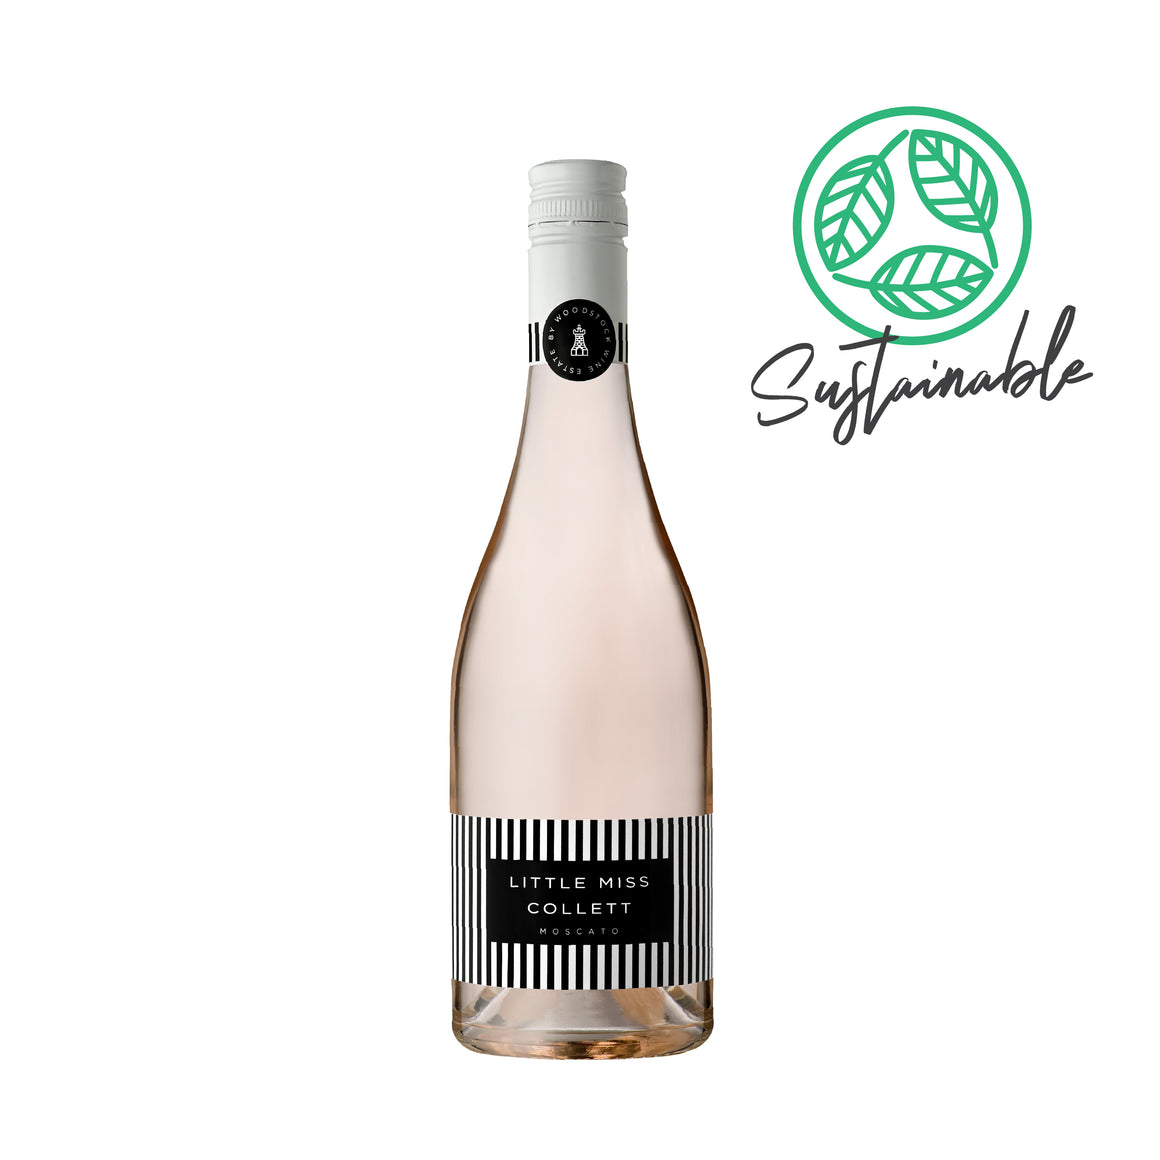 WOODSTOCK LITTLE MISS COLLET MOSCATO 2018 500ml